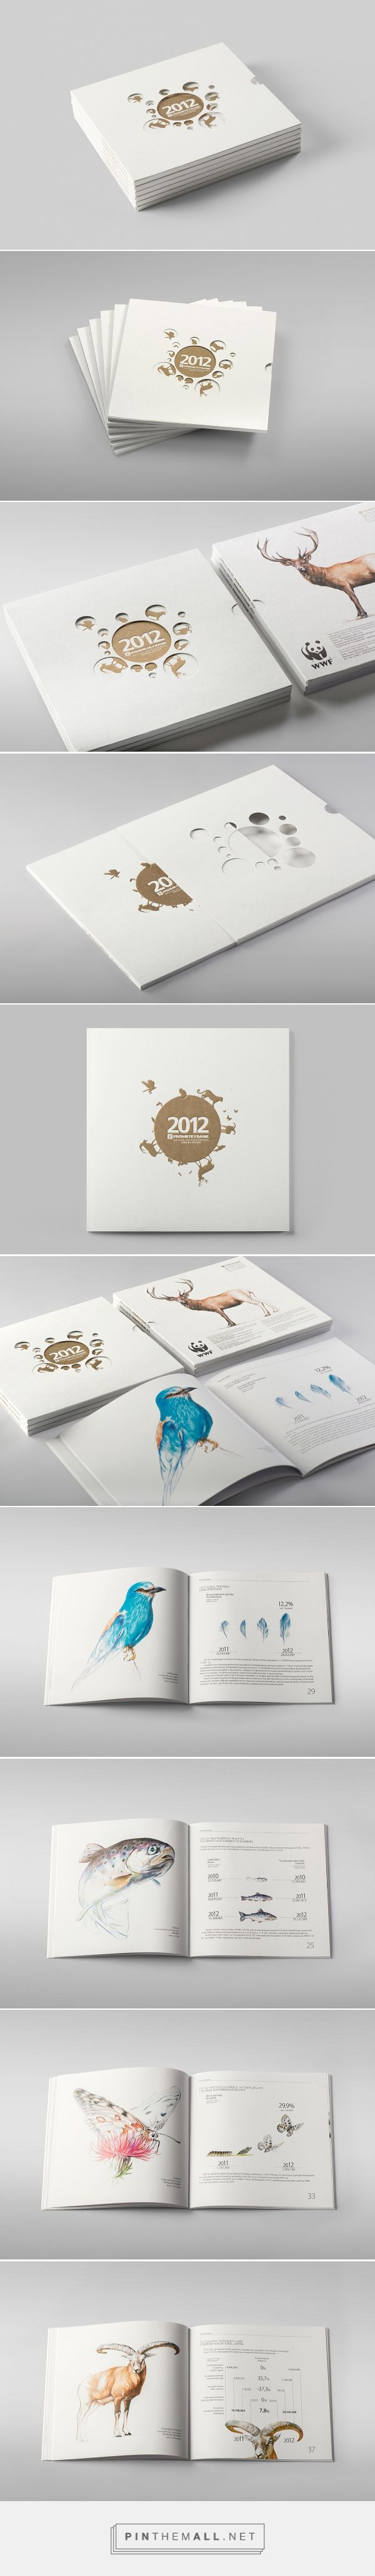 Prometey Bank Annual Report 2012 on Behance